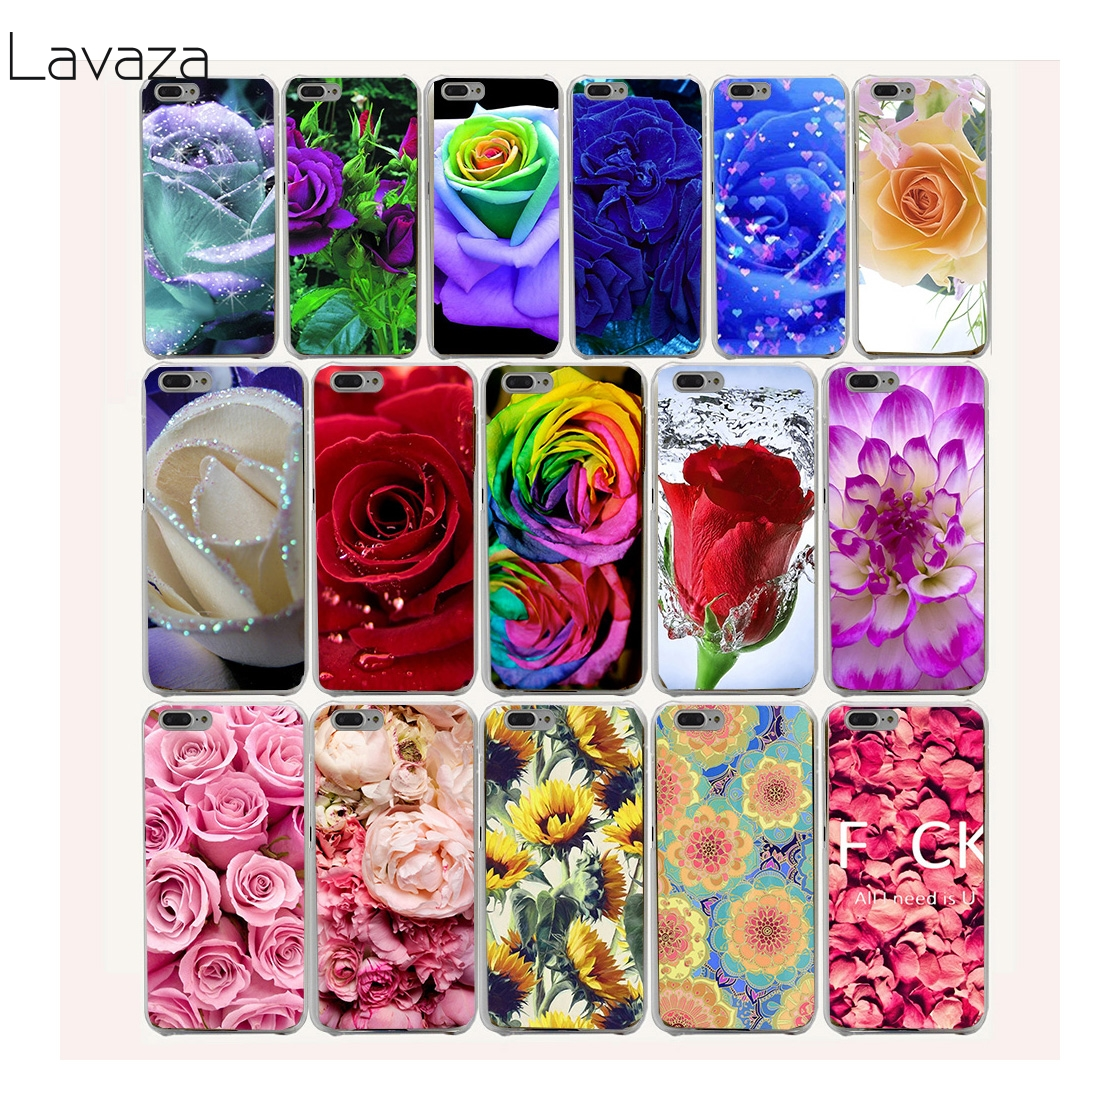 Aliexpress Buy Lavaza 4af Pretty Flowers Red Rose Hard Plastic